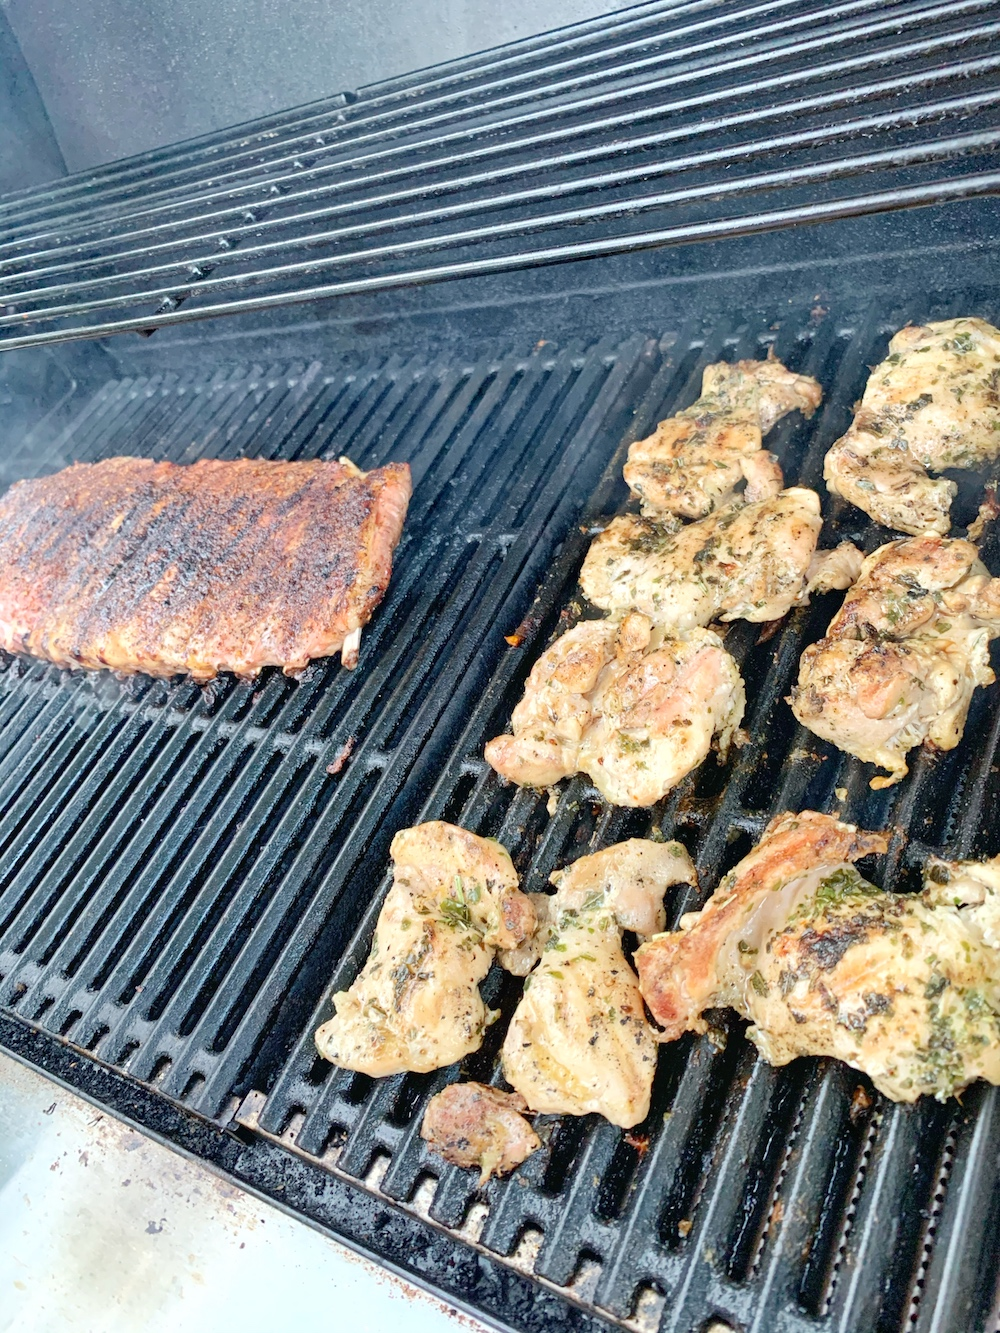 st louis style ribs on the grill